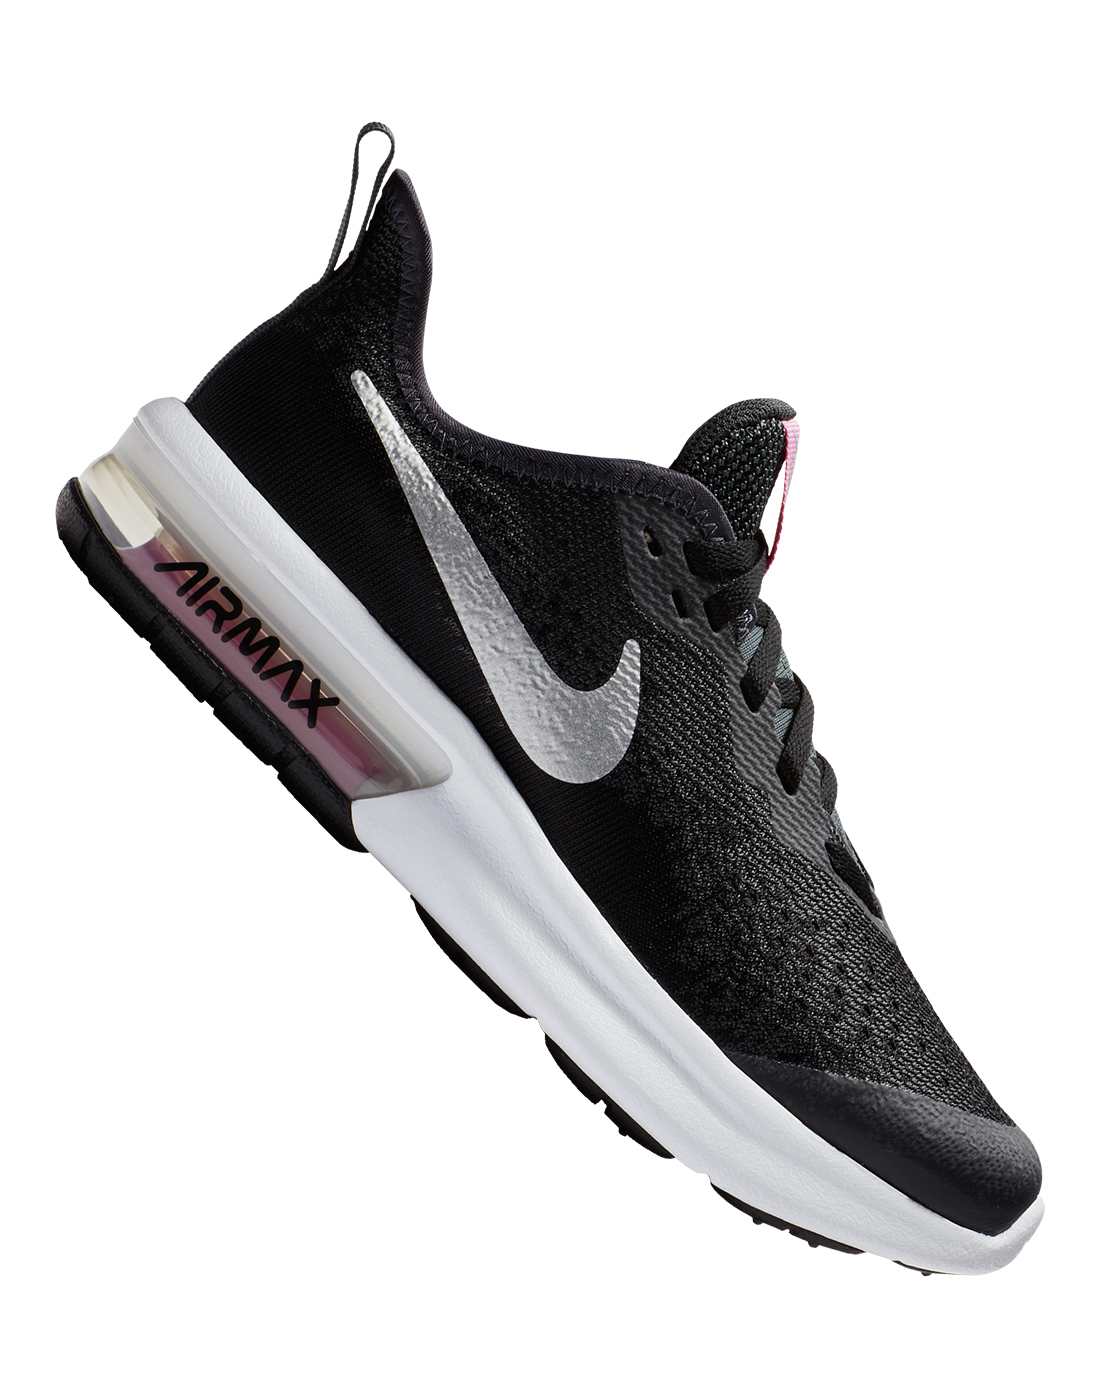 a157a43912 Girl's Black Nike Air Max Sequent | Life Style Sports